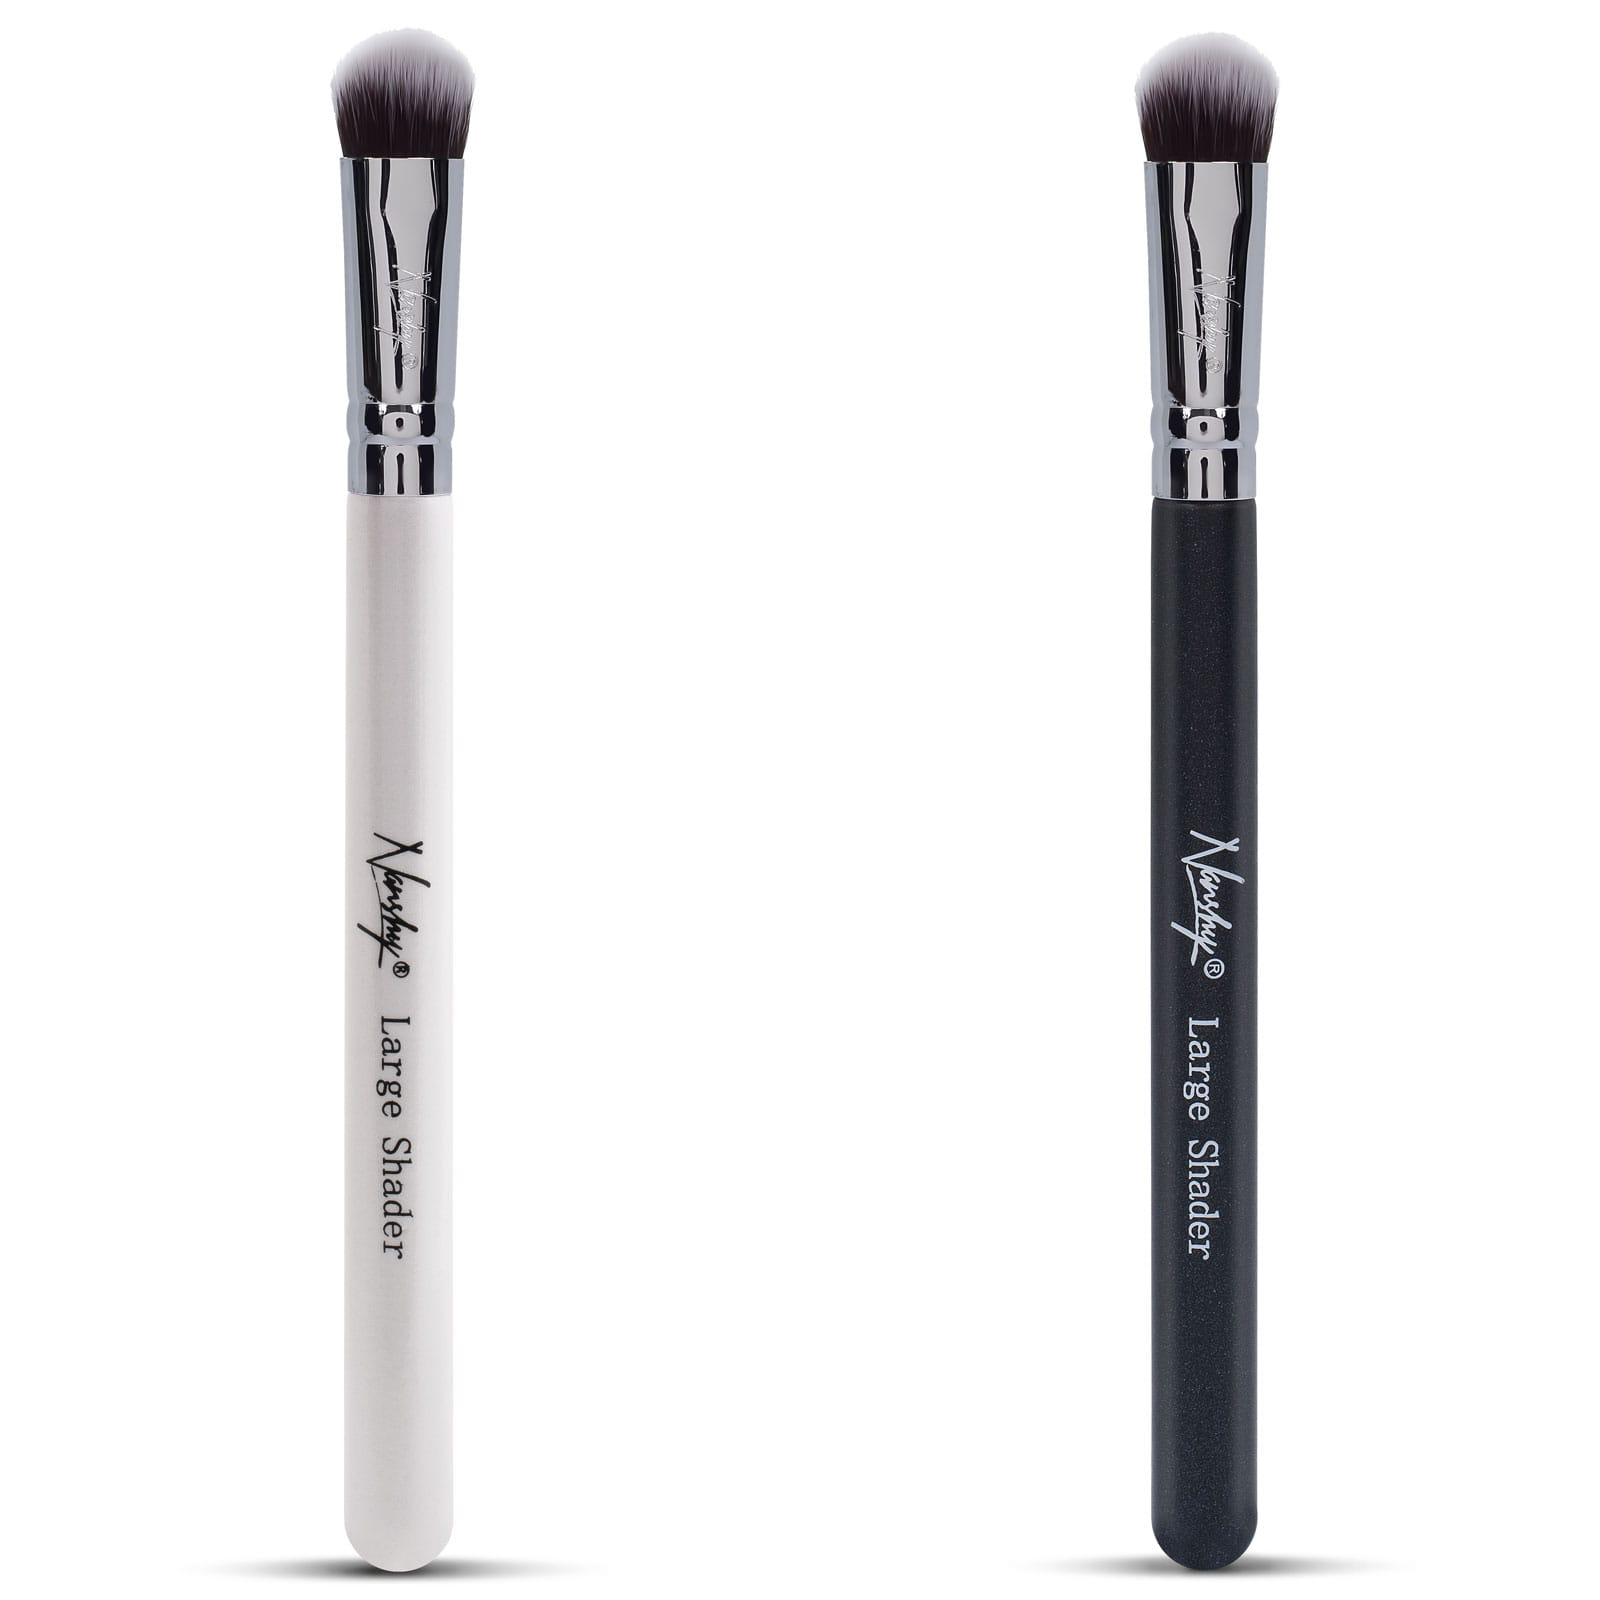 Nanshy Nanshy Large Shader EB07 Eye Makeup Brush